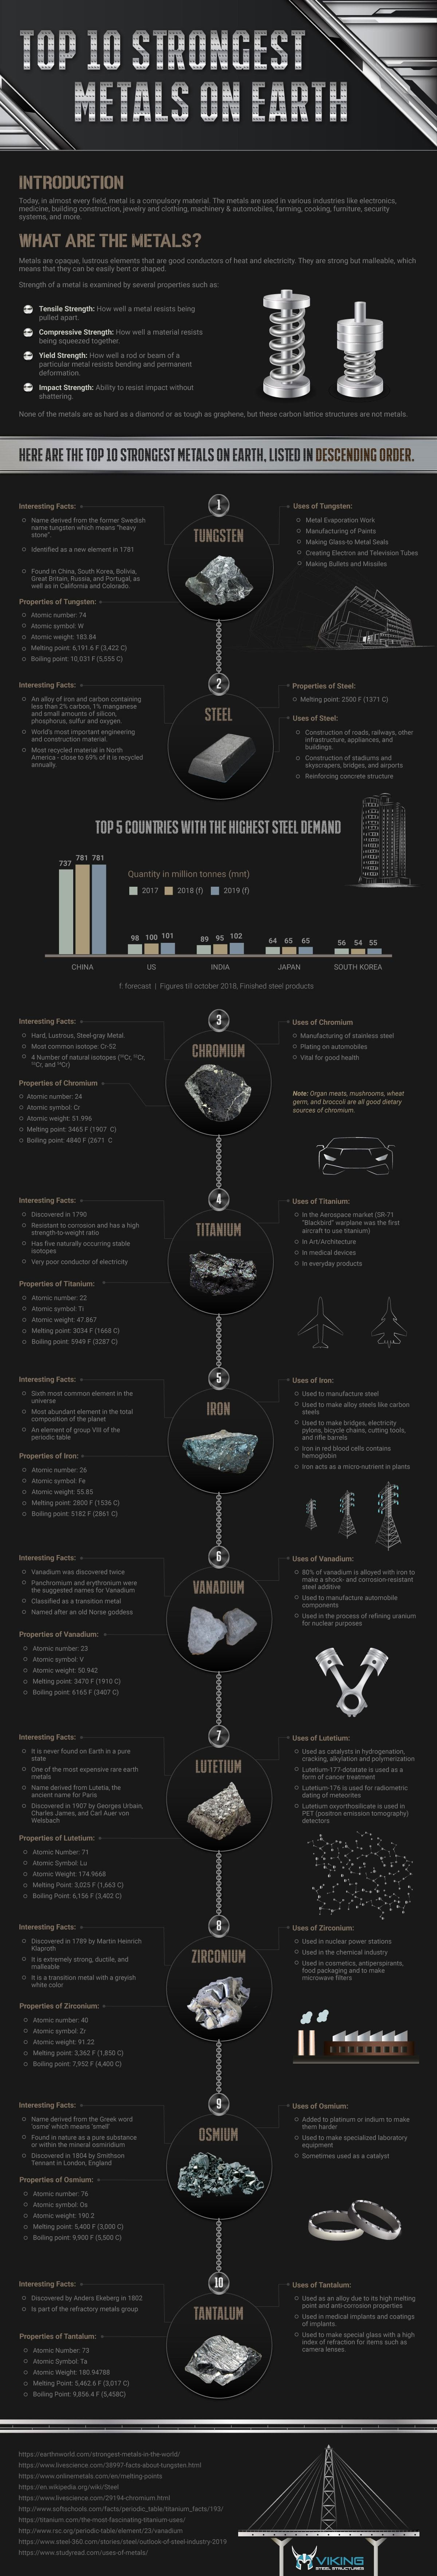 Top 10 Strongest Metals on Earth